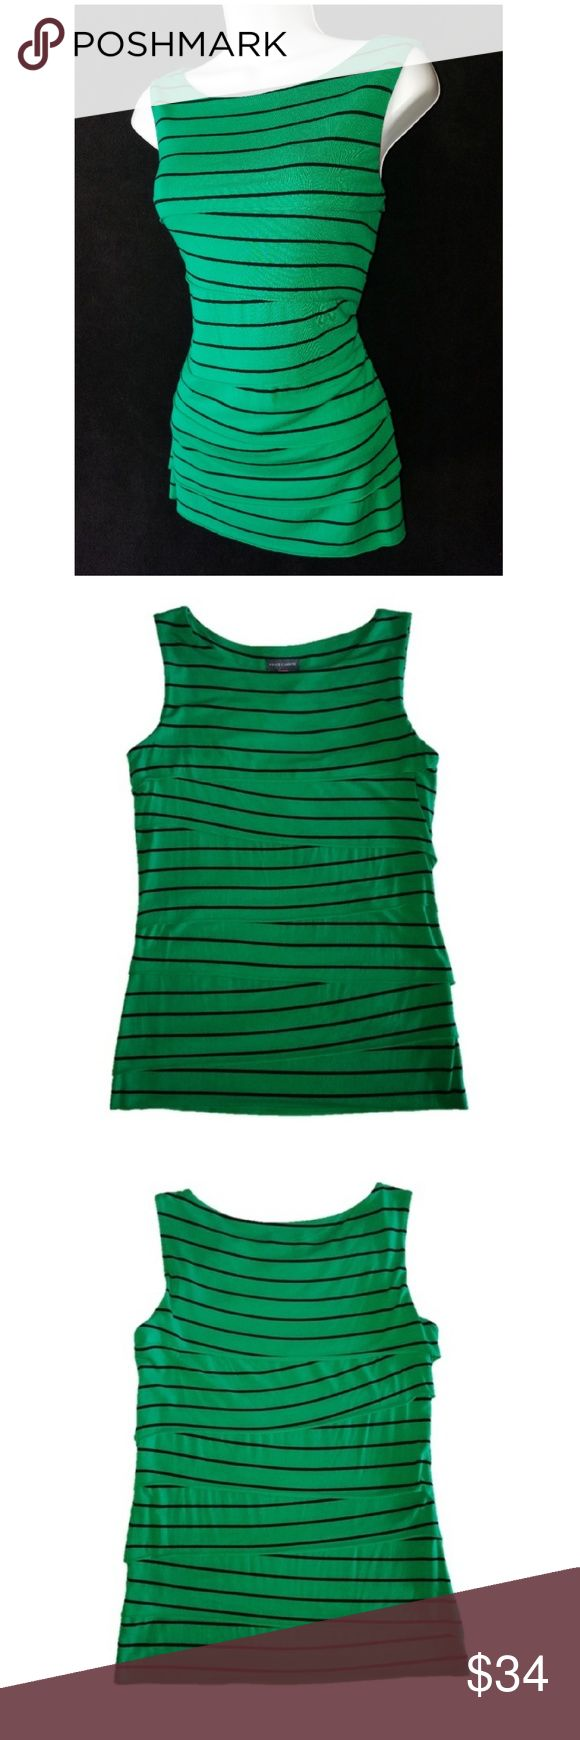 VINCE CAMUTO Bandage Tiered Top Small VINCE CAMUTO Bandage Tiered Top Excellent Condition Size Small Vince Camuto Tops Tank Tops